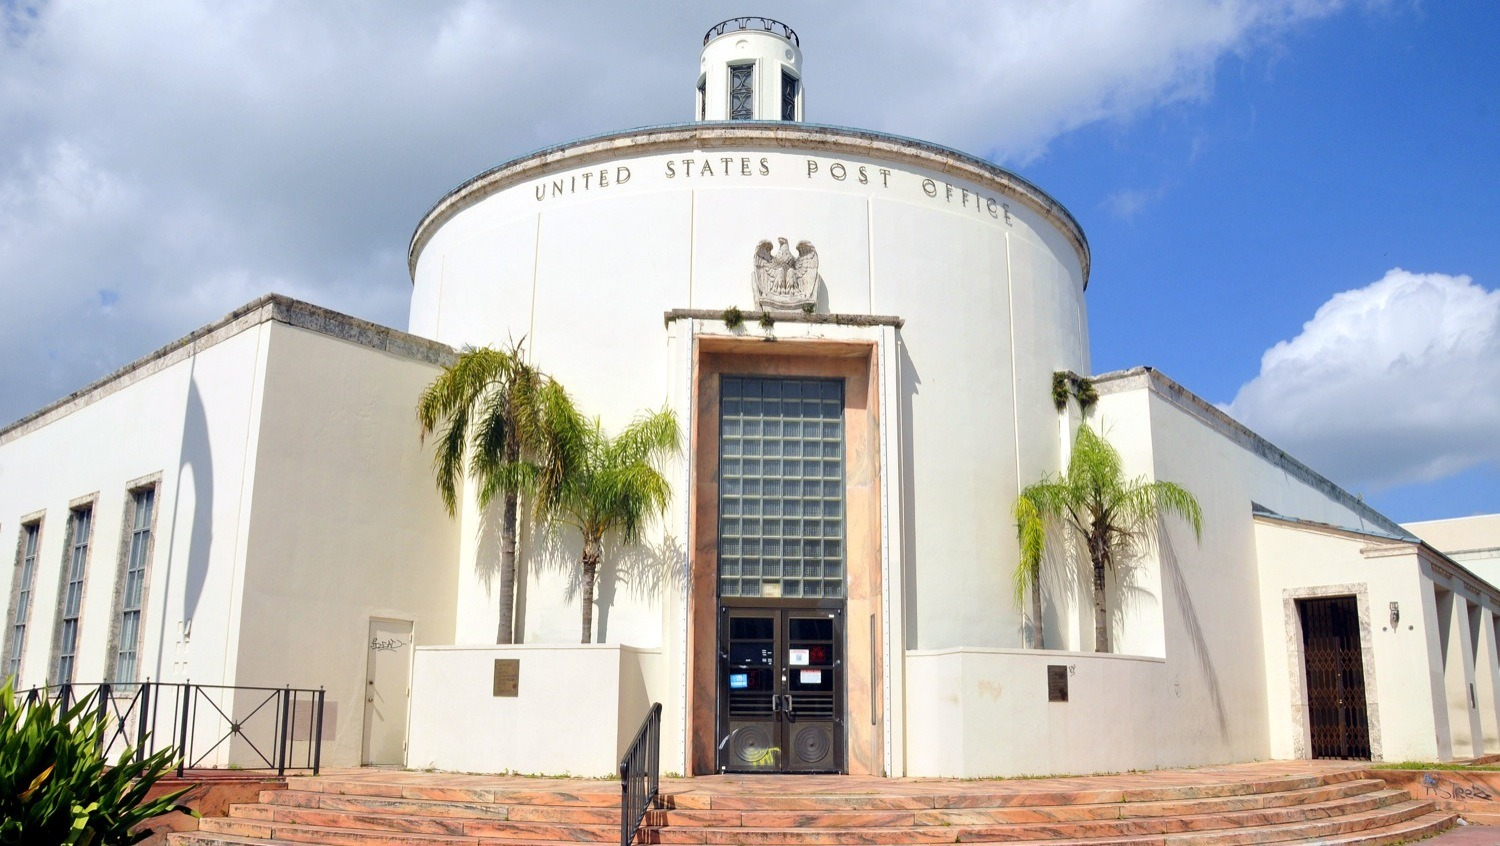 Miami Beach U.S. Post Office